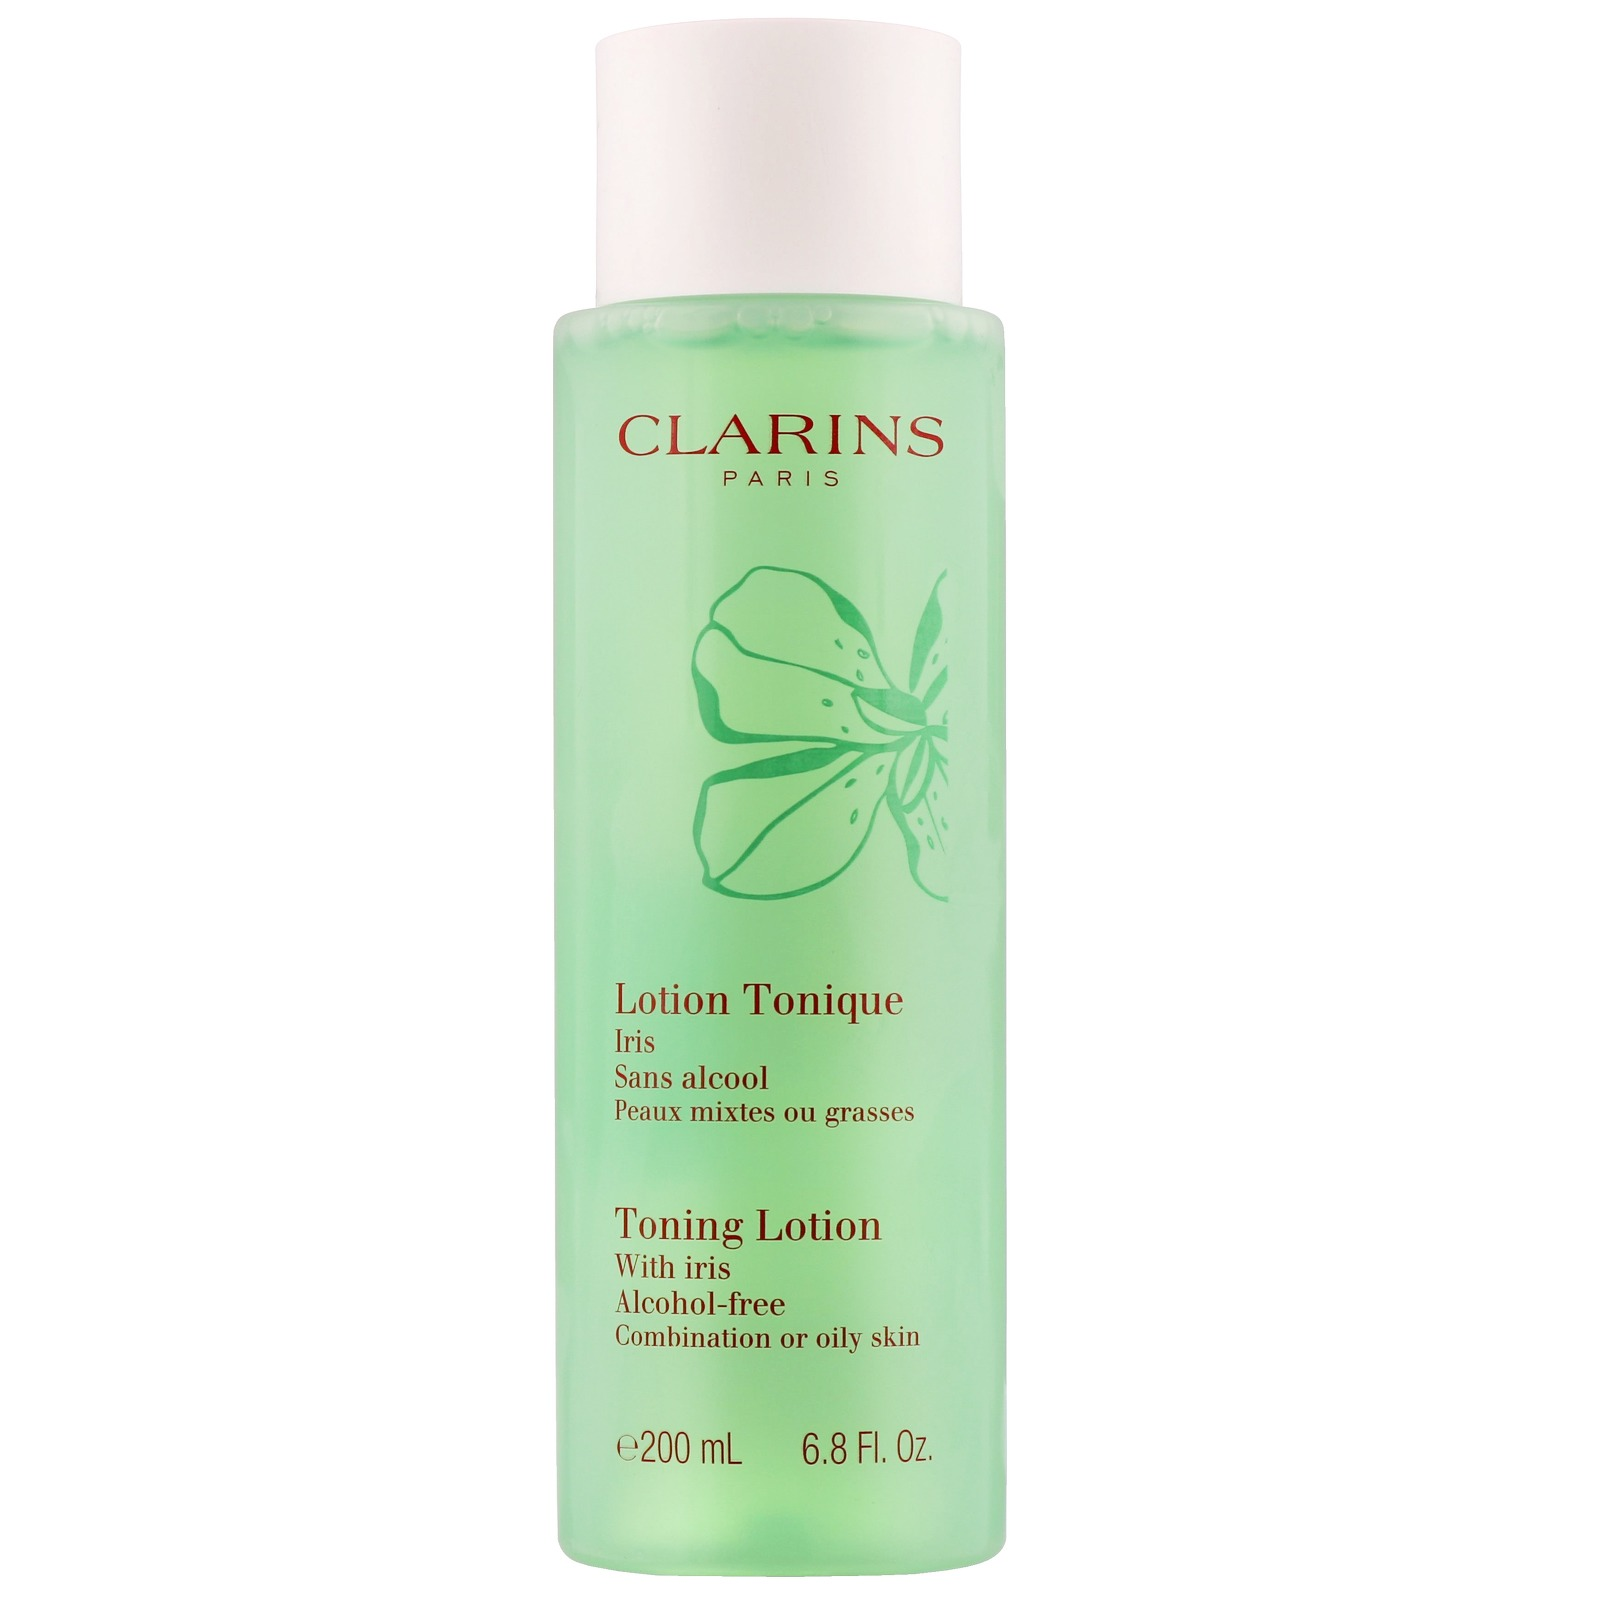 Clarins Cleansers & Toners Toning Lotion With Iris Alcohol-Free Combination/Oily Skin 200ml / 6.8 fl.oz.